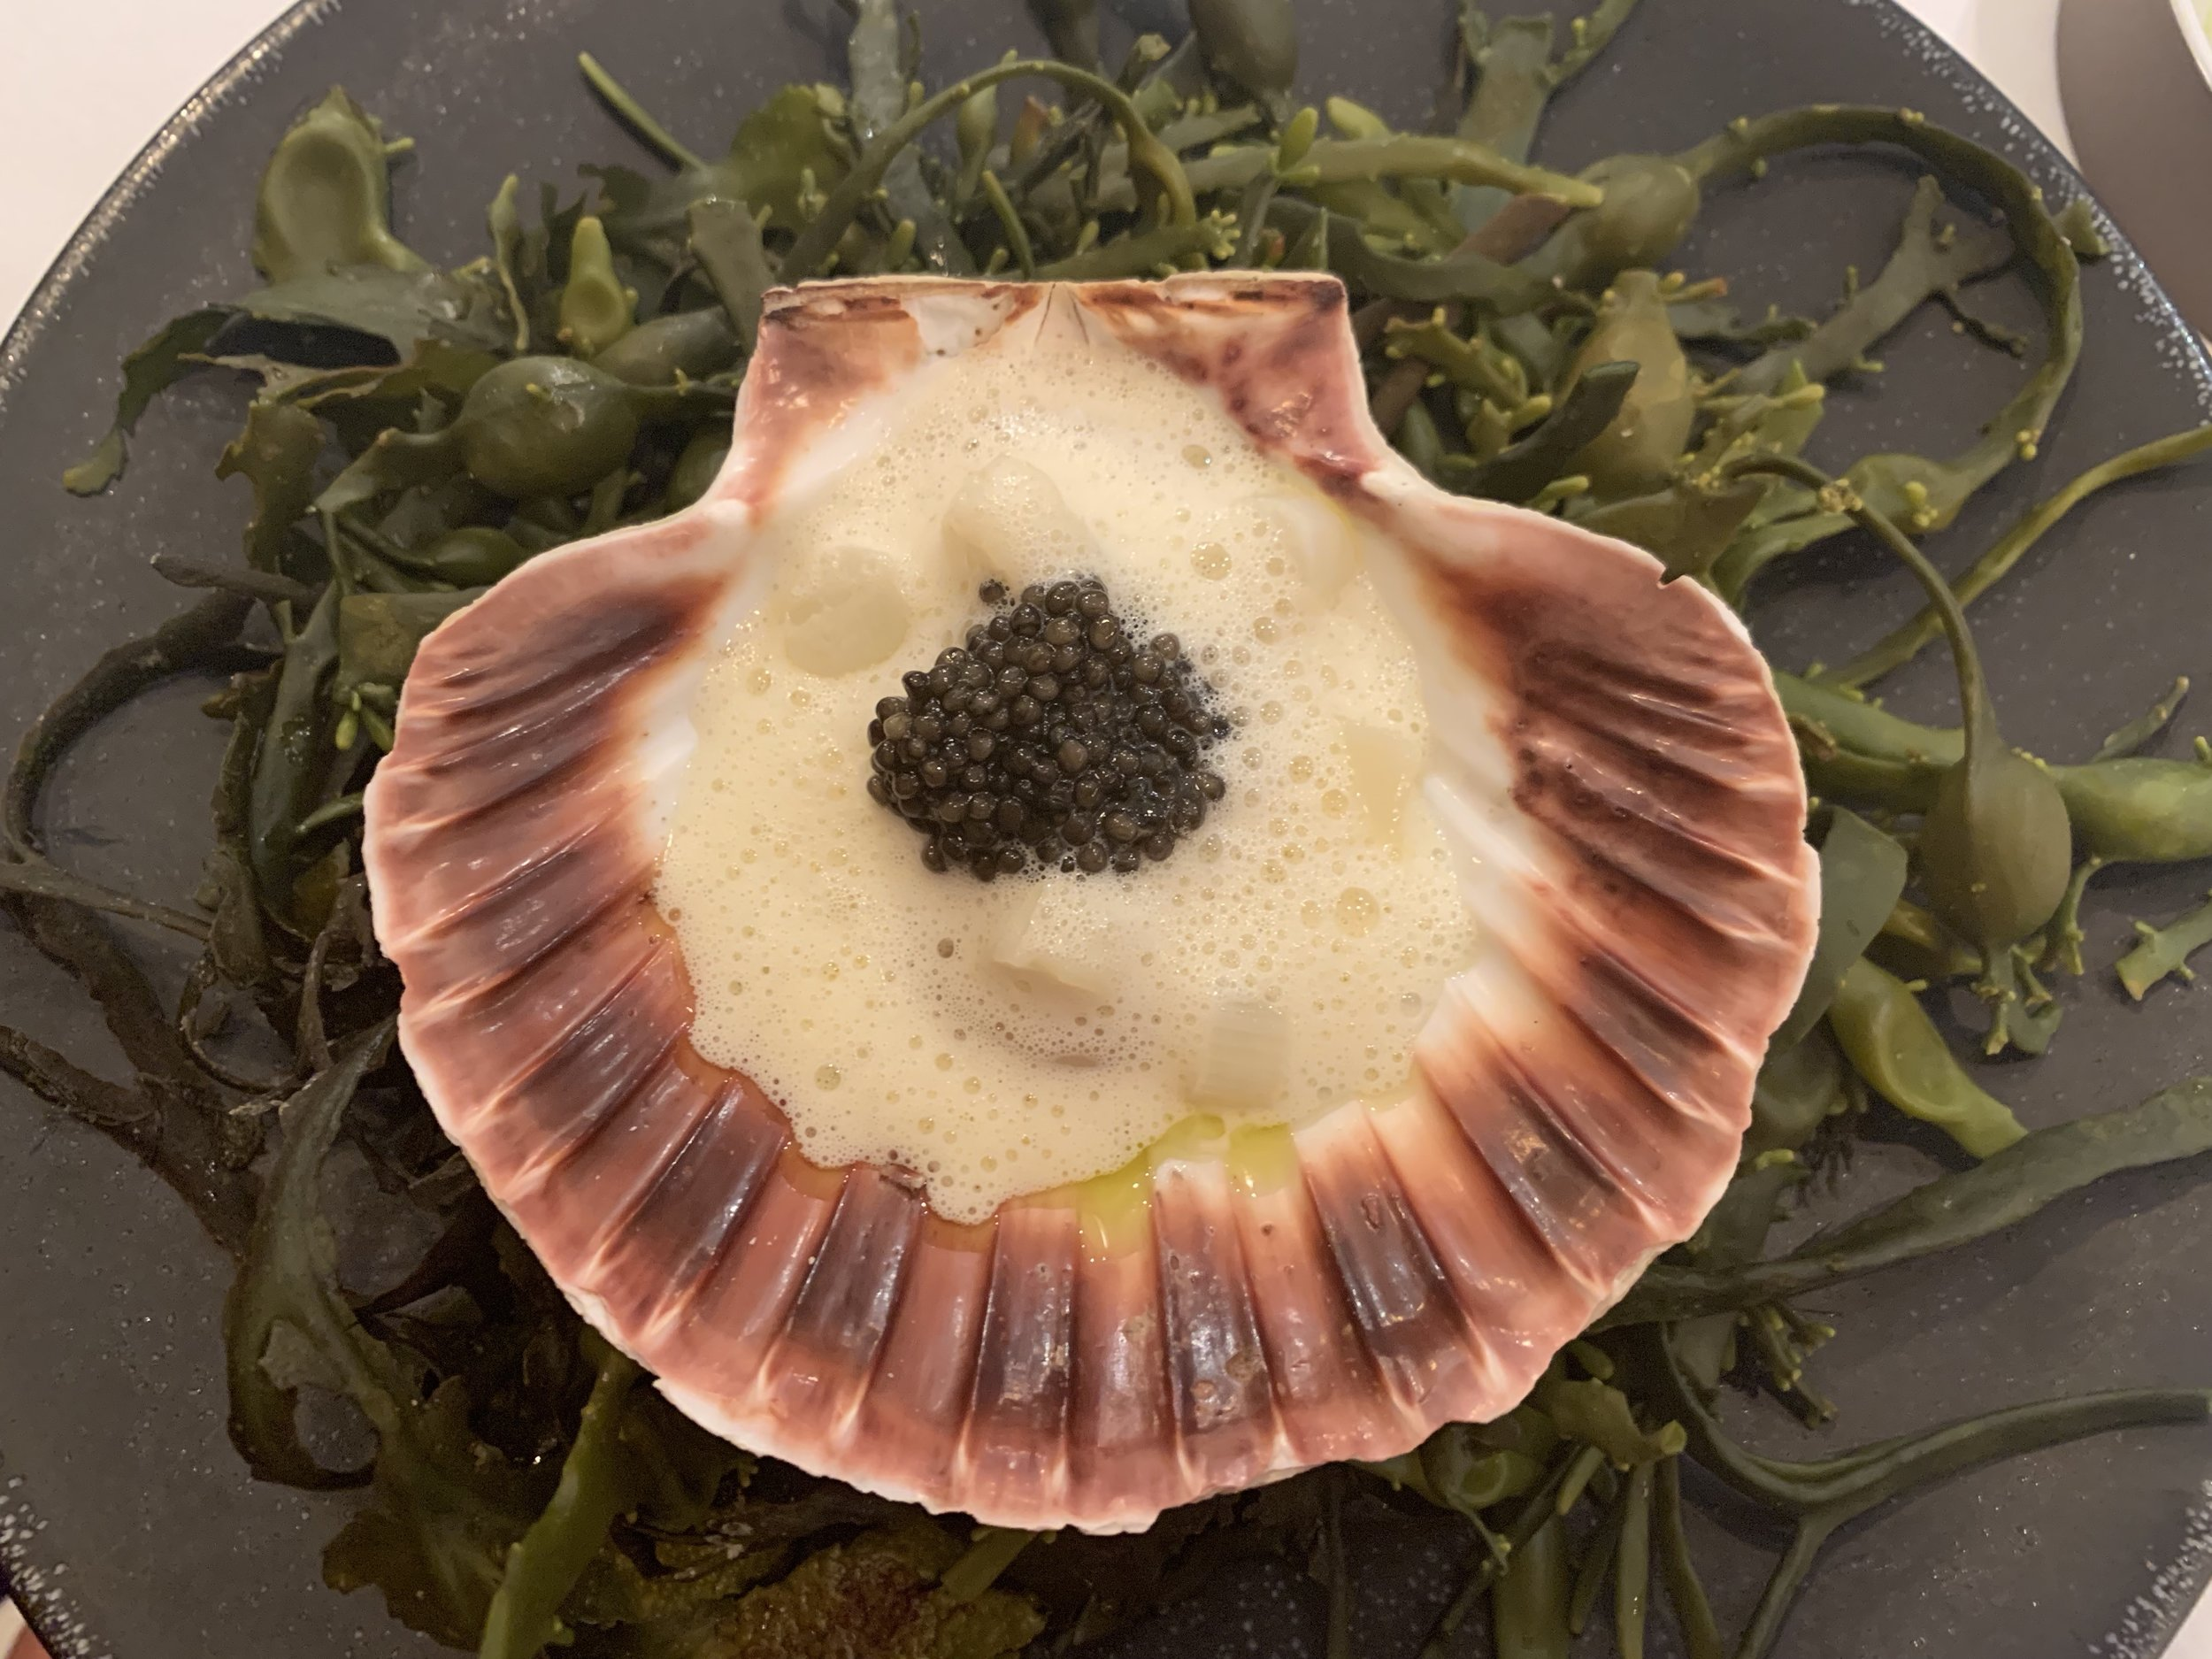 Scallop - This scallop was caught the day before and brought to the restaurant alive, where it was served simply with a little caviar on top.